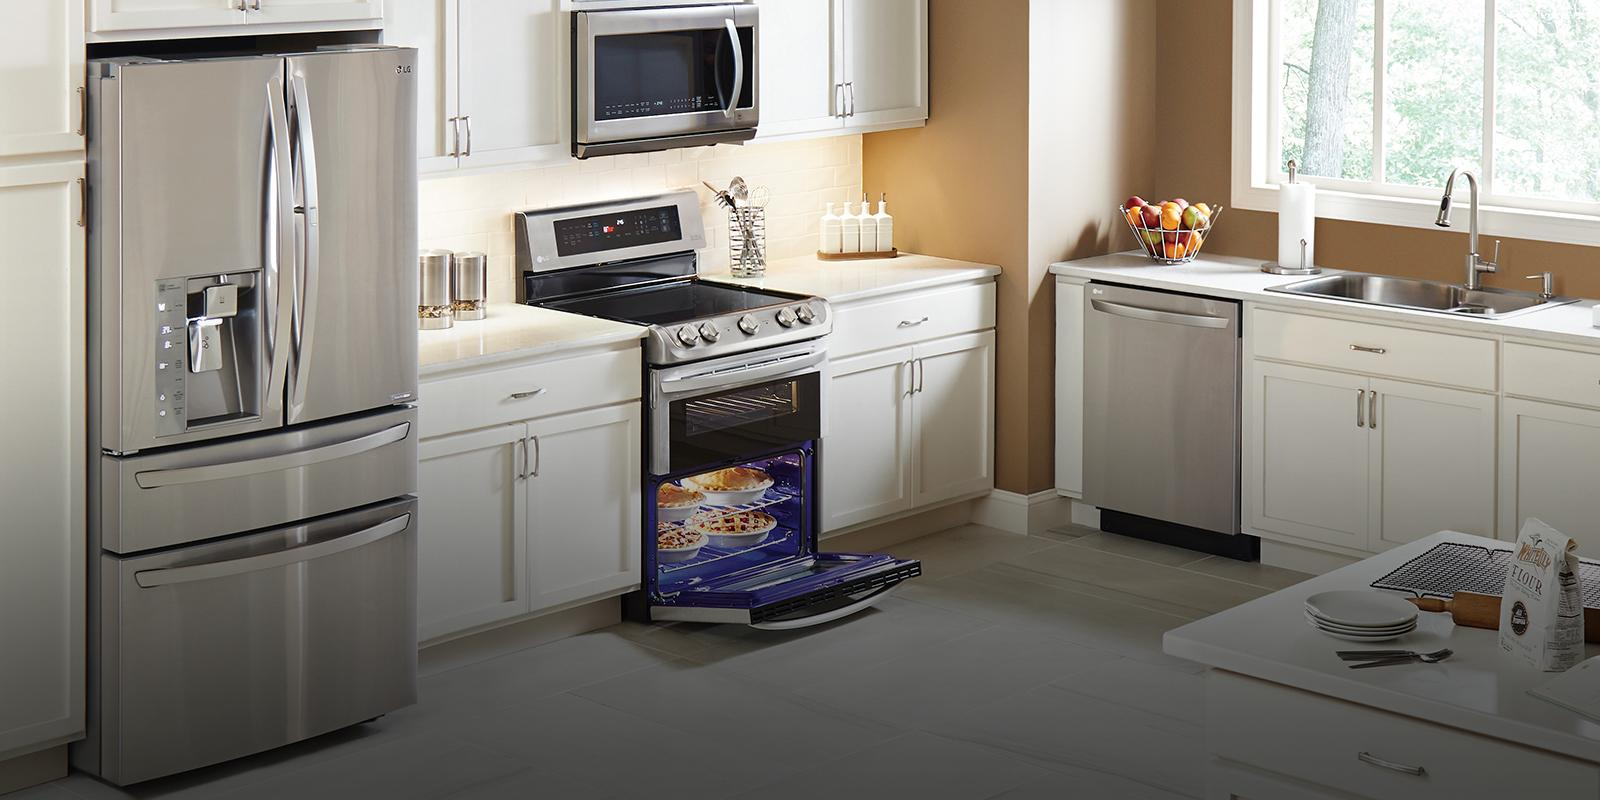 Uncategorized Appliances For The Kitchen lg appliances compare kitchen home usa bring the cutting edge back to kitchen